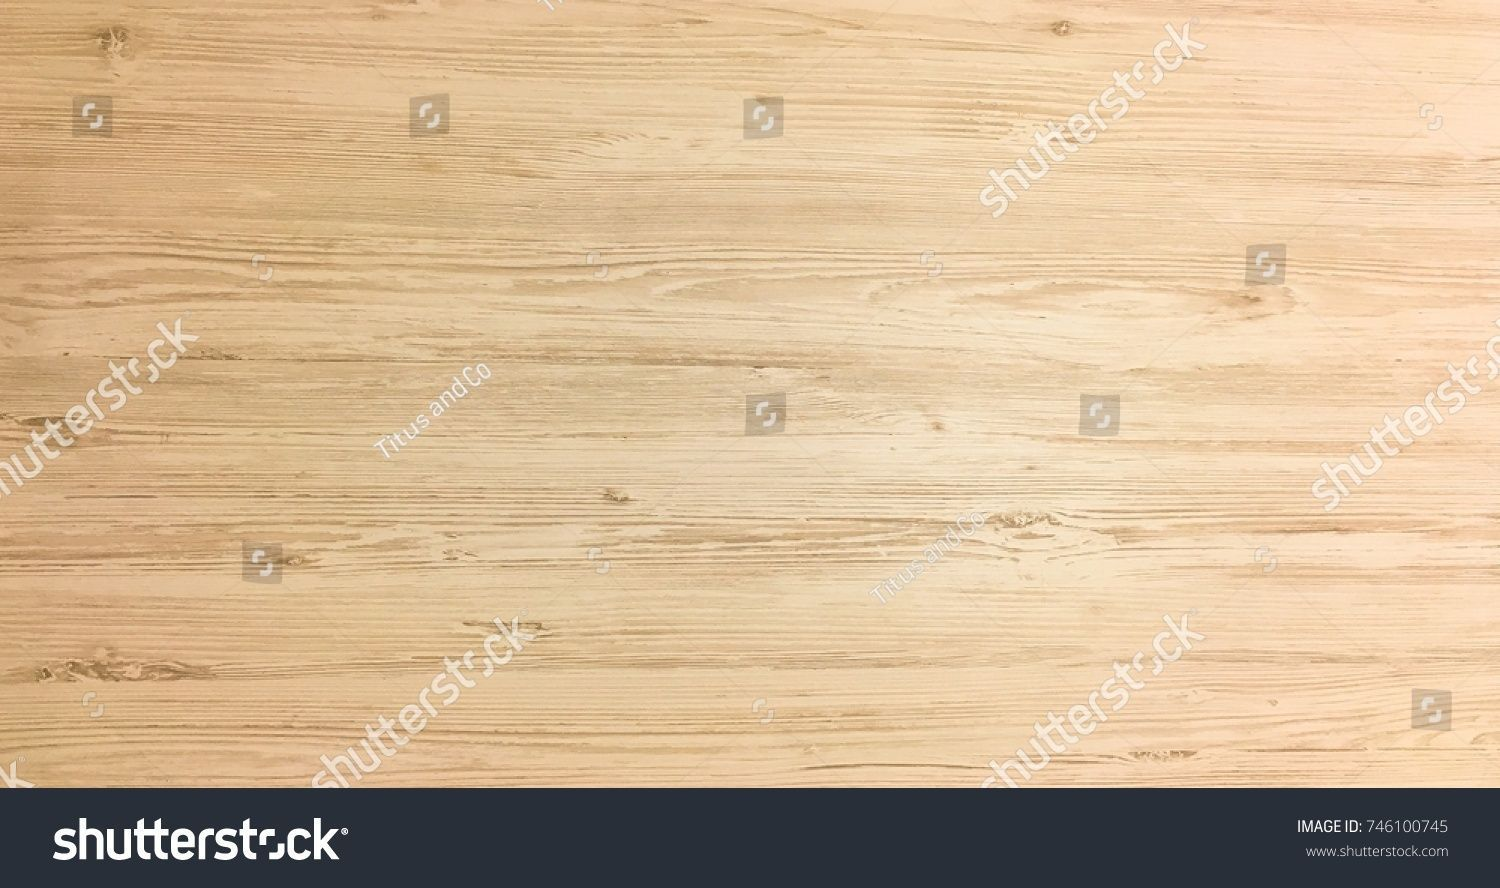 Light wood texture background surface with old natural pattern or old wood texture table top view. Grunge surface with wood texture background. Grain timber texture background. Rustic table top view #Sponsored , #Ad, #surface#natural#pattern#background #woodtexturebackground Light wood texture background surface with old natural pattern or old wood texture table top view. Grunge surface with wood texture background. Grain timber texture background. Rustic table top view #Sponsored , #Ad, #surfac #woodtexturebackground